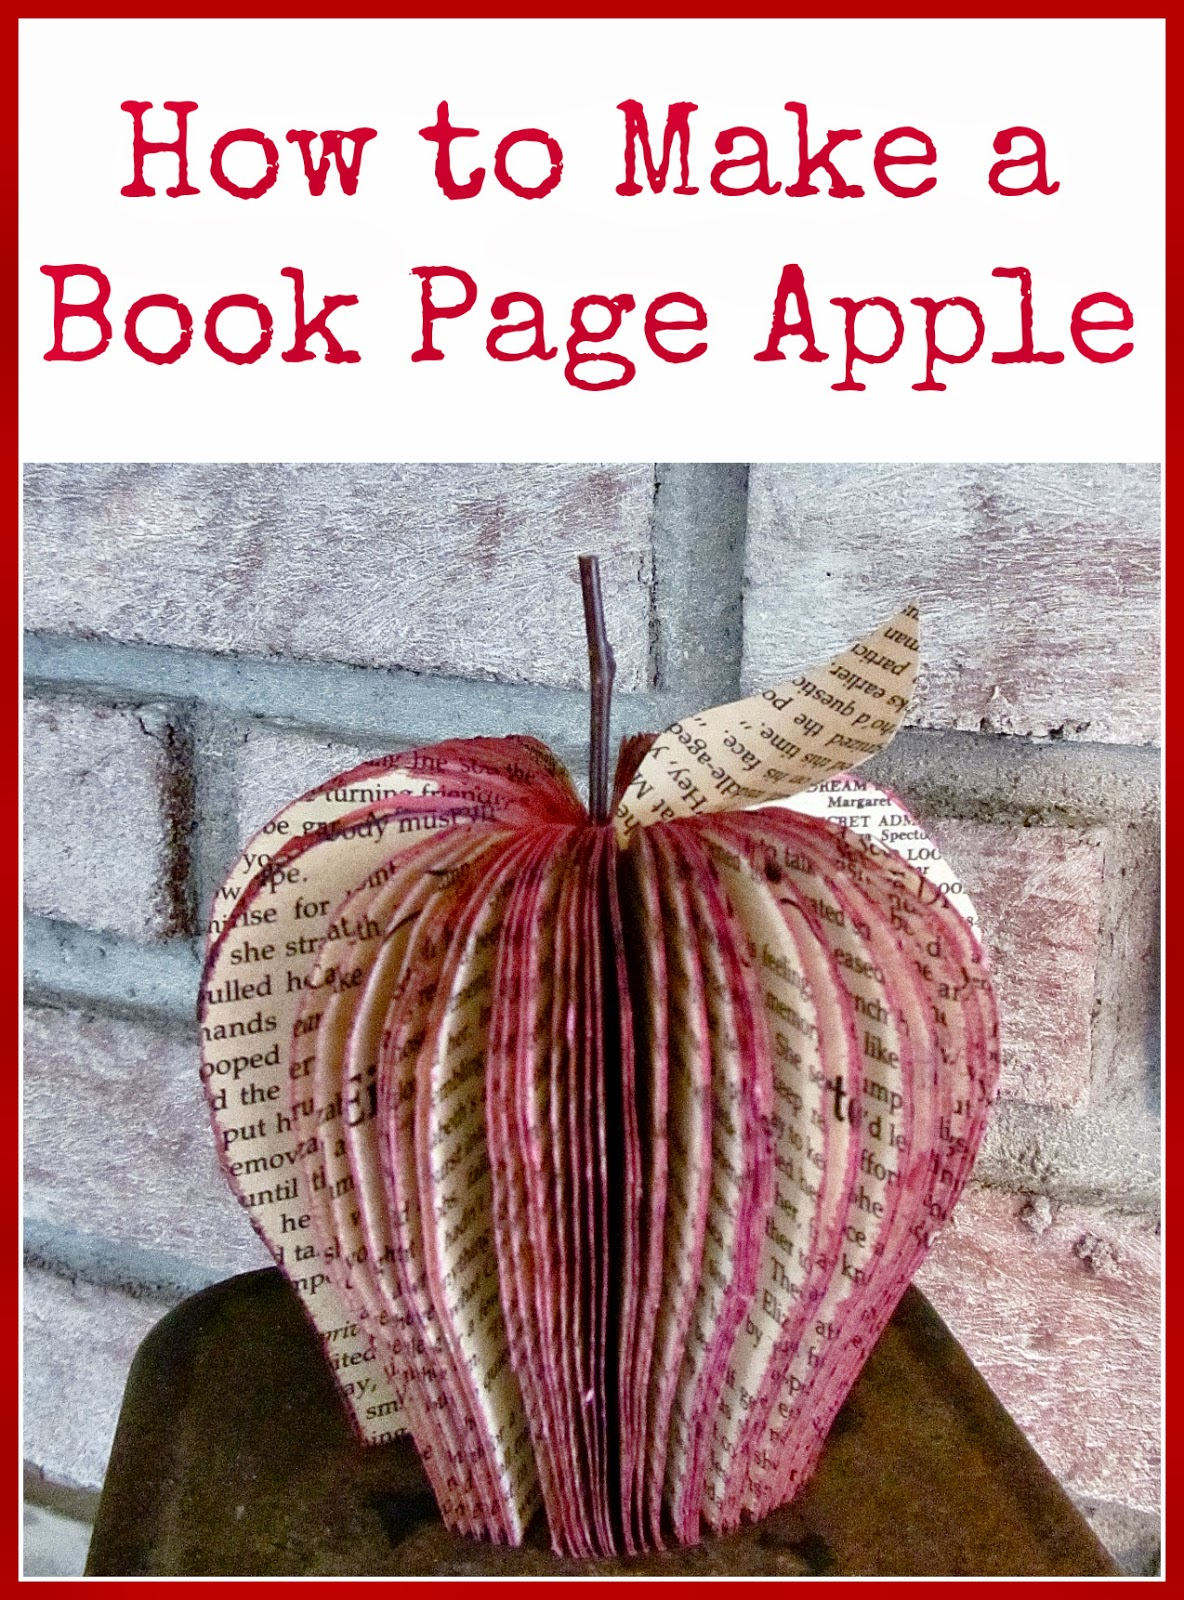 How to Make a Book Page Apple - Hymns and Verses